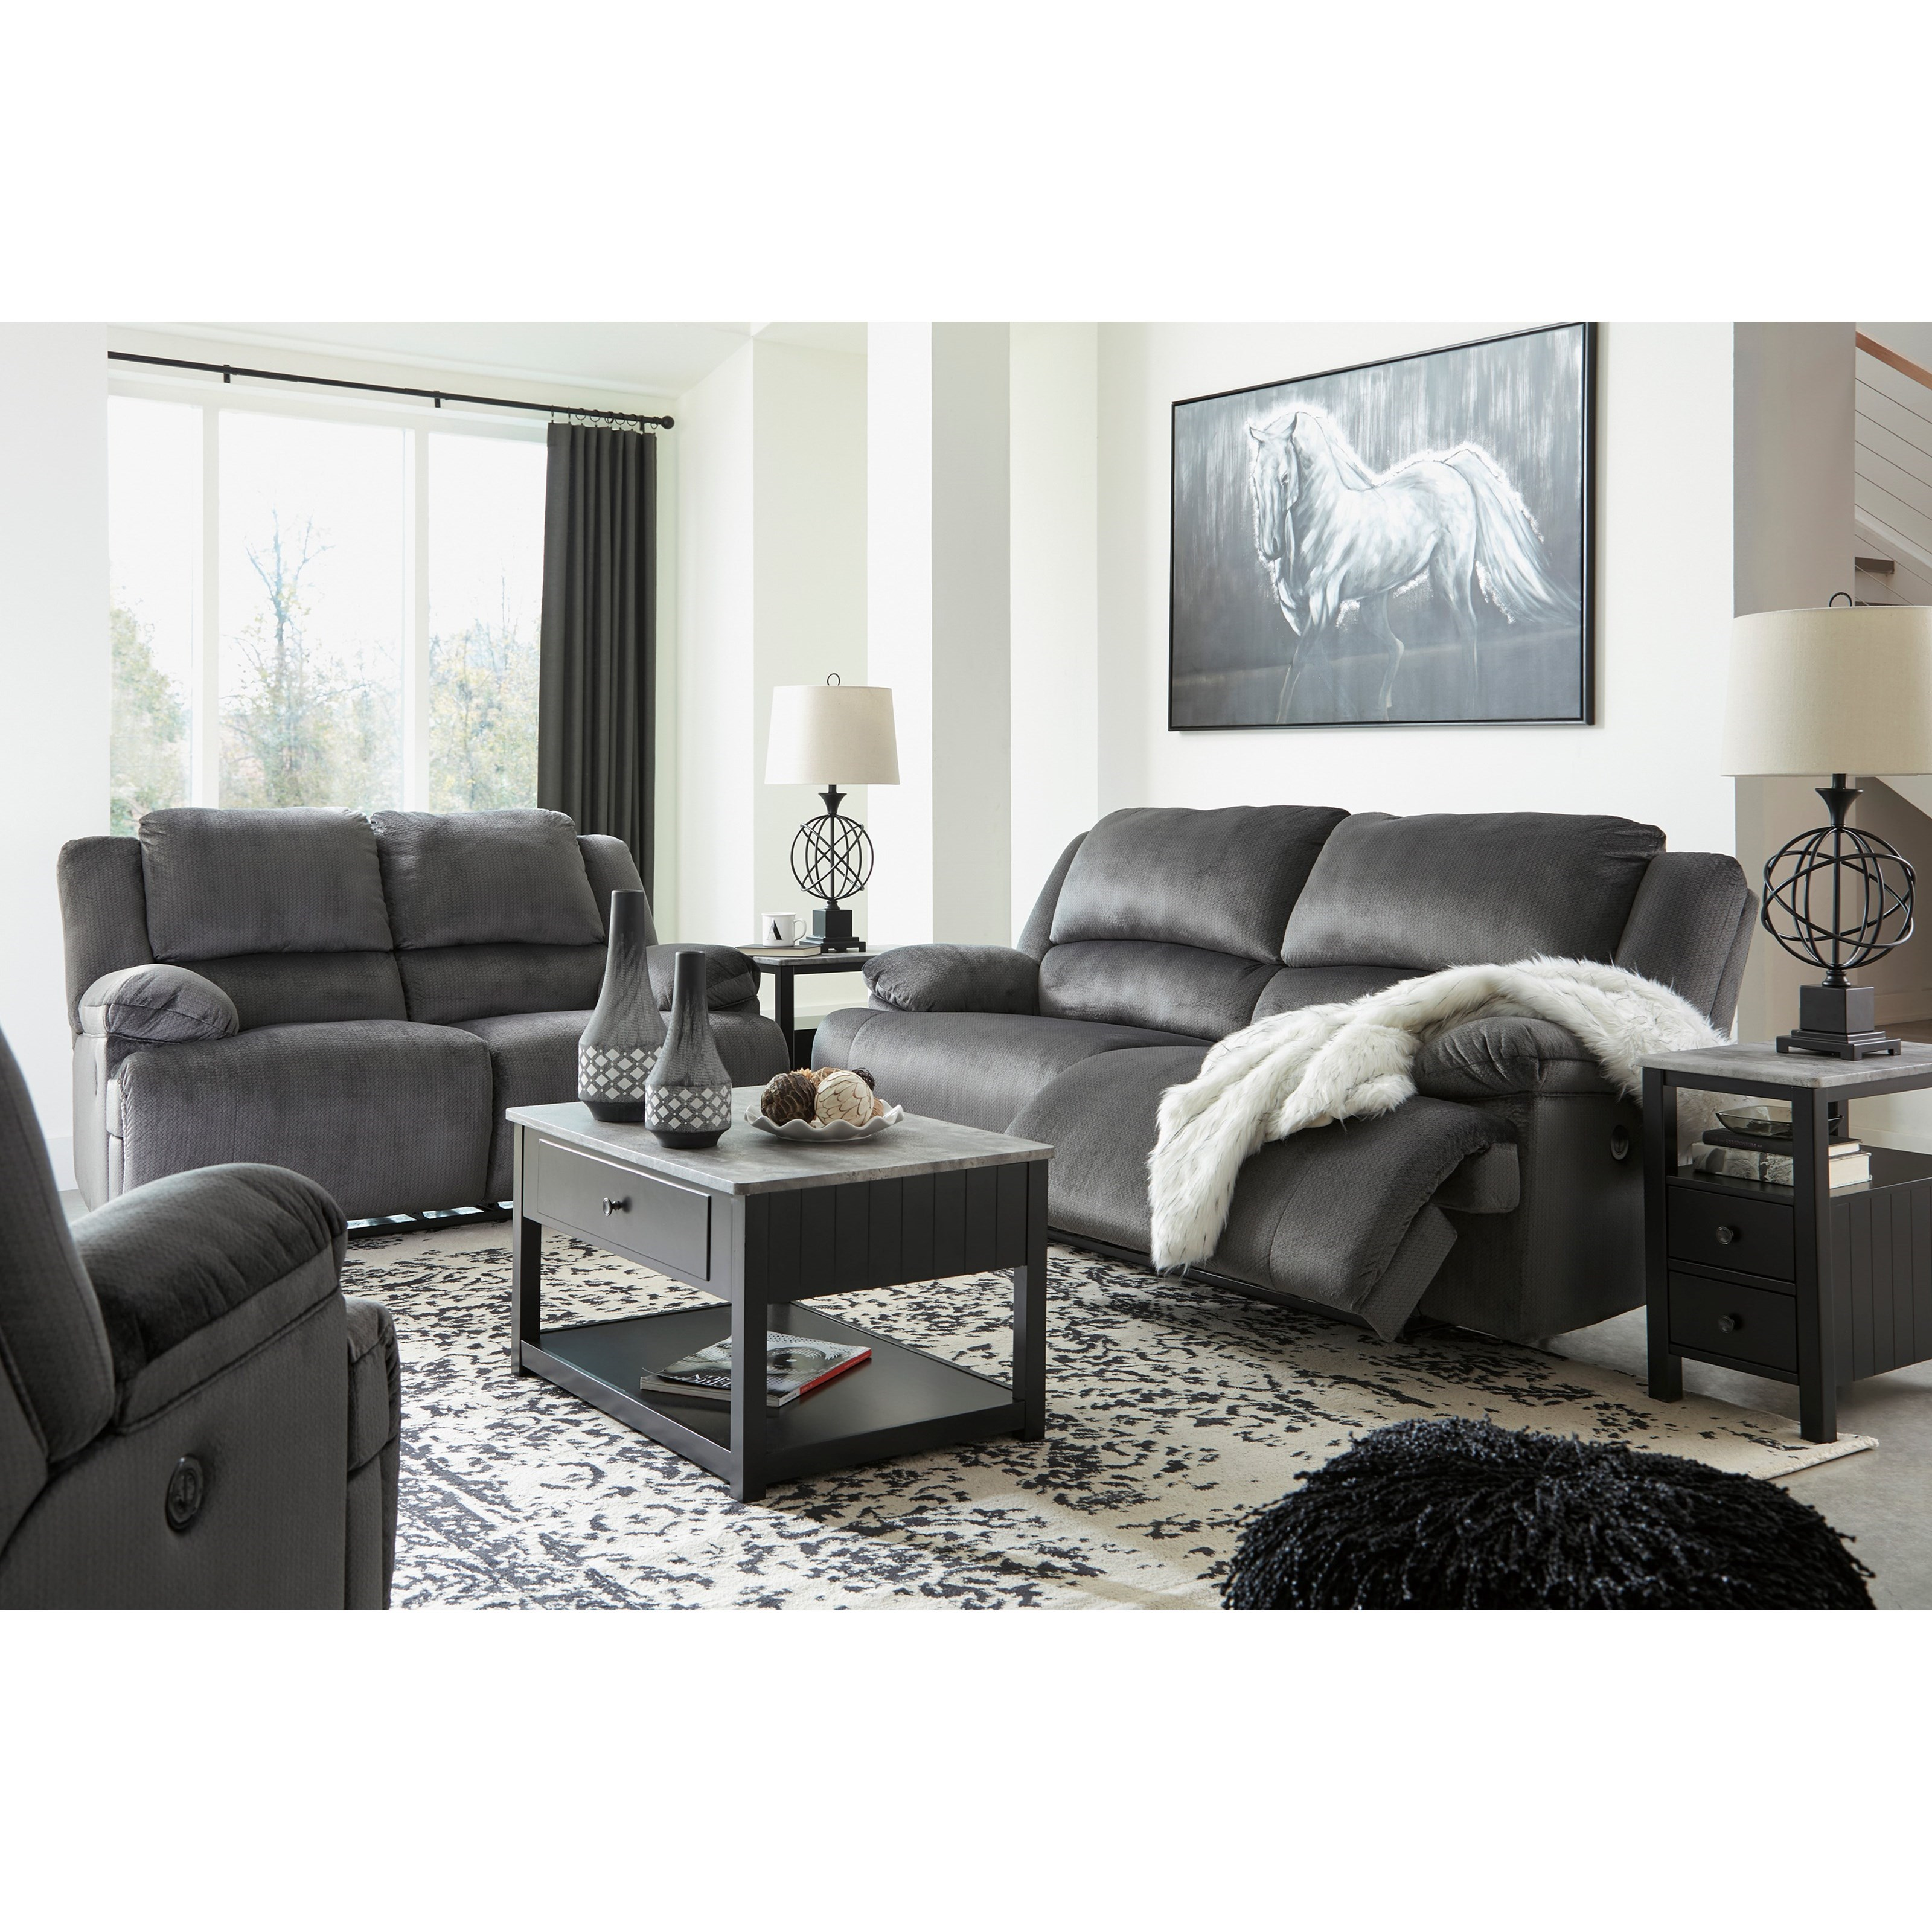 Clonmel Reclining Living Room Group by Signature Design by Ashley at Standard Furniture